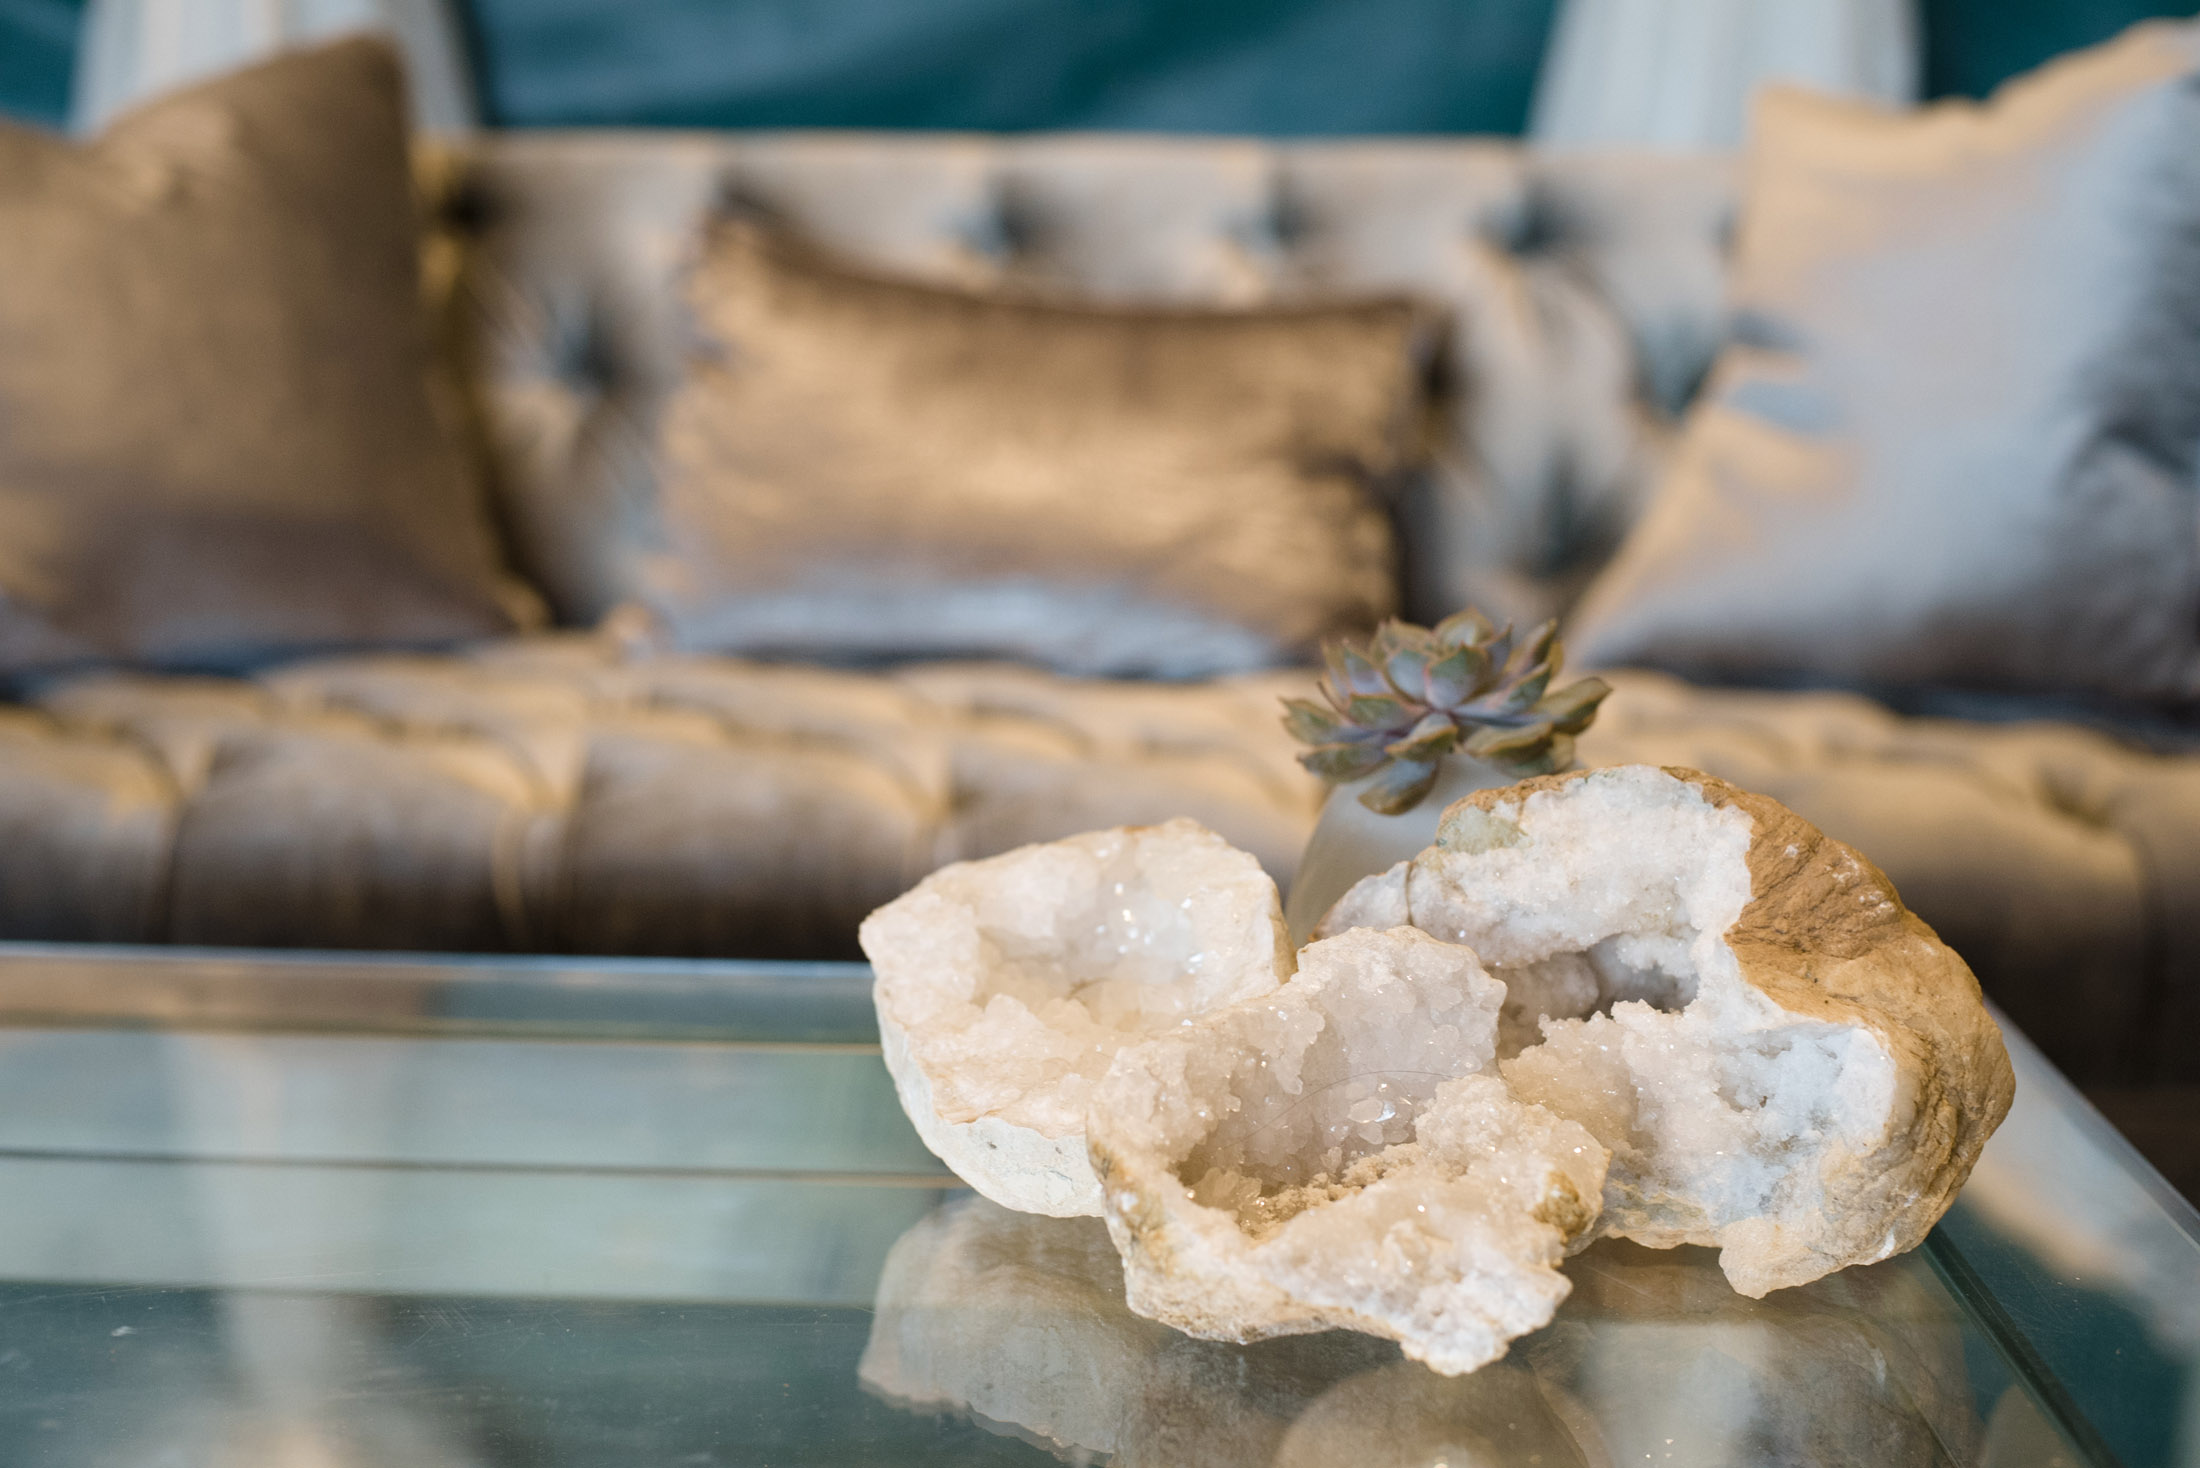 Geodes brought good energy into our Balance Reverie Retreat.